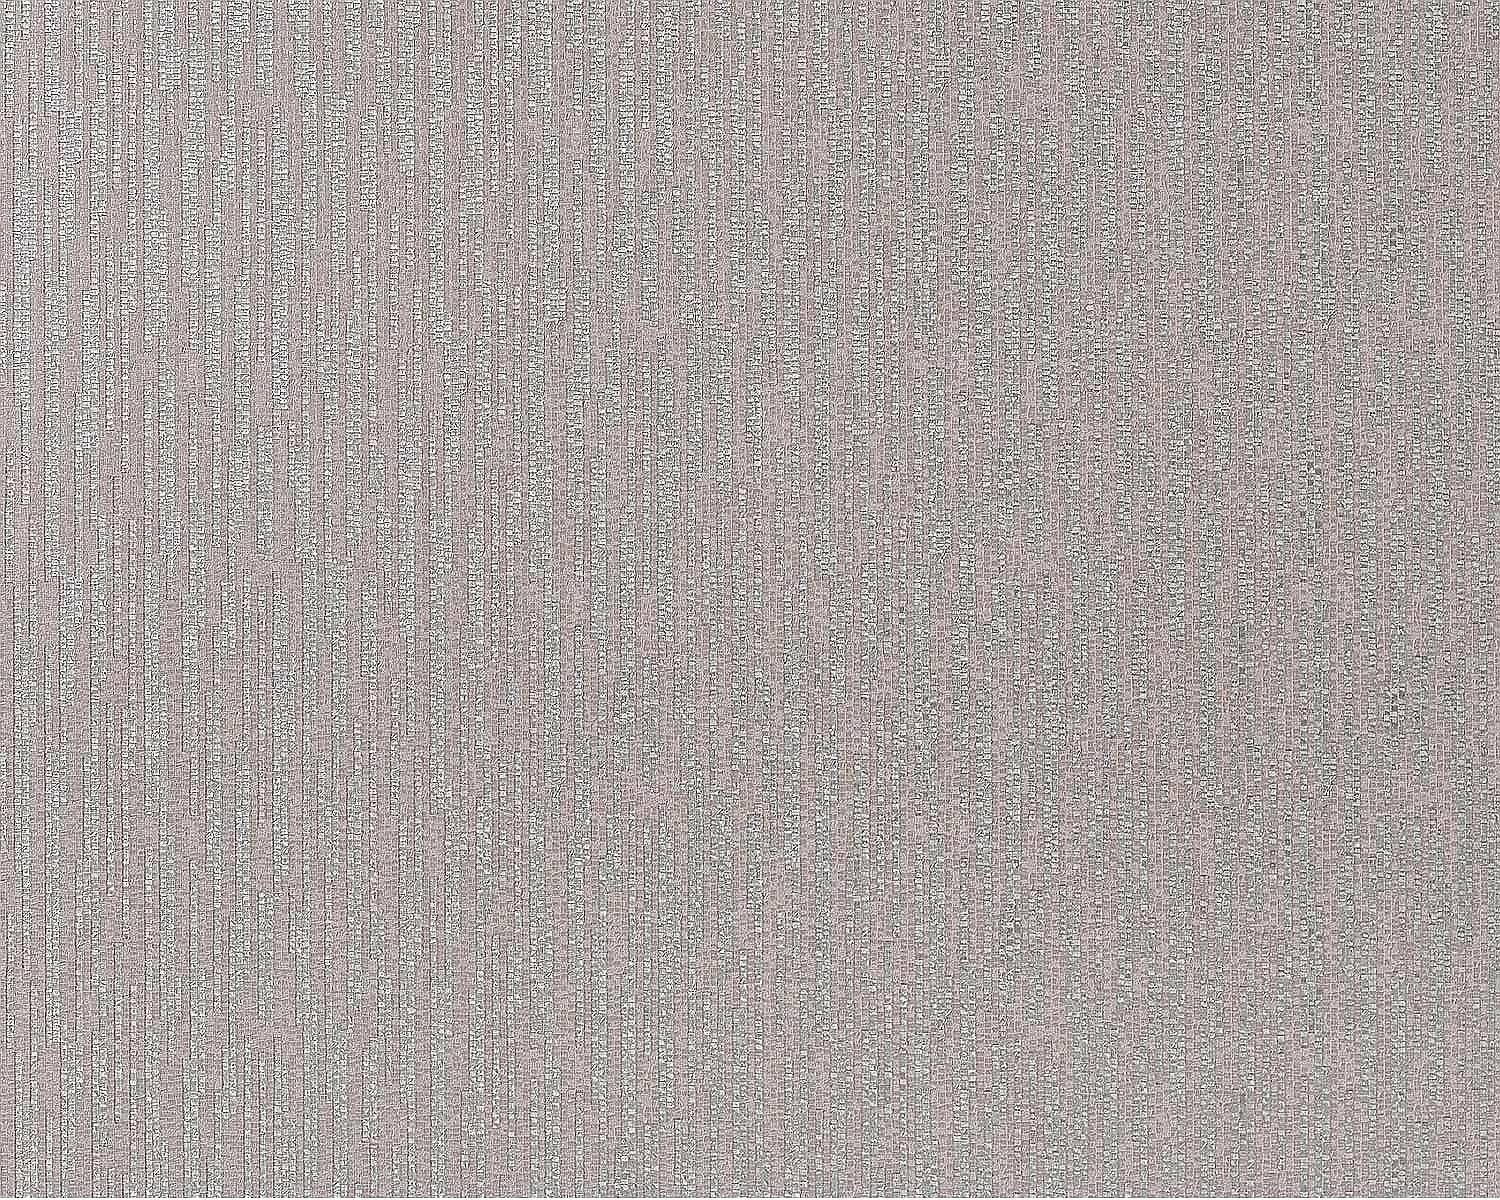 Wallpaper wall non-woven matrix-mosaic EDEM 940-34 luxury embossed heavy-weight steel-grey 10,65 sqm (114 sq ft)